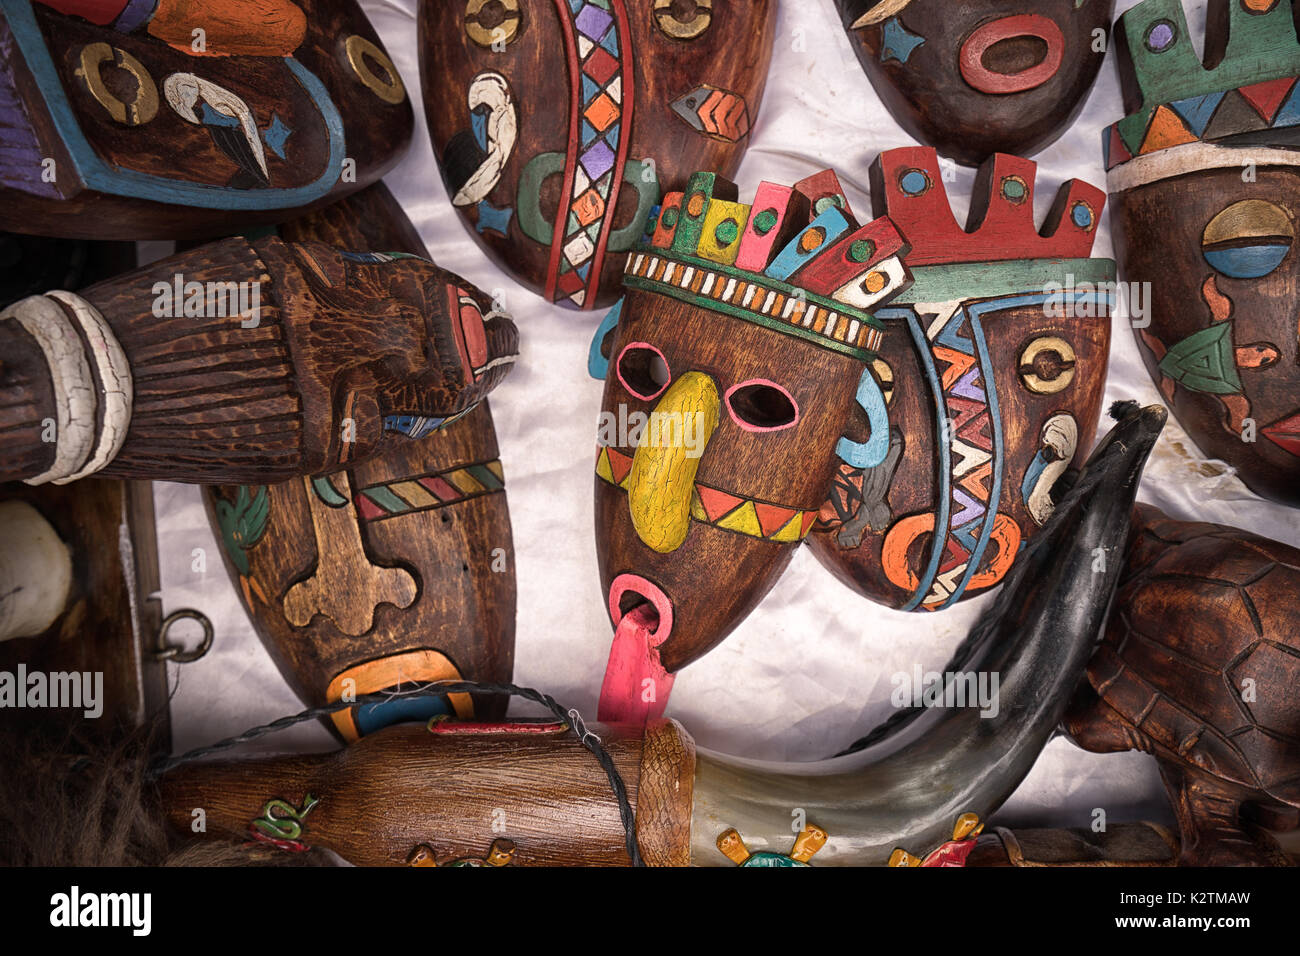 April 29, 2017 Otavalo, Ecuador: indigenous quechua face masks made of wood  selling on the street in the Saturday market - Stock Image